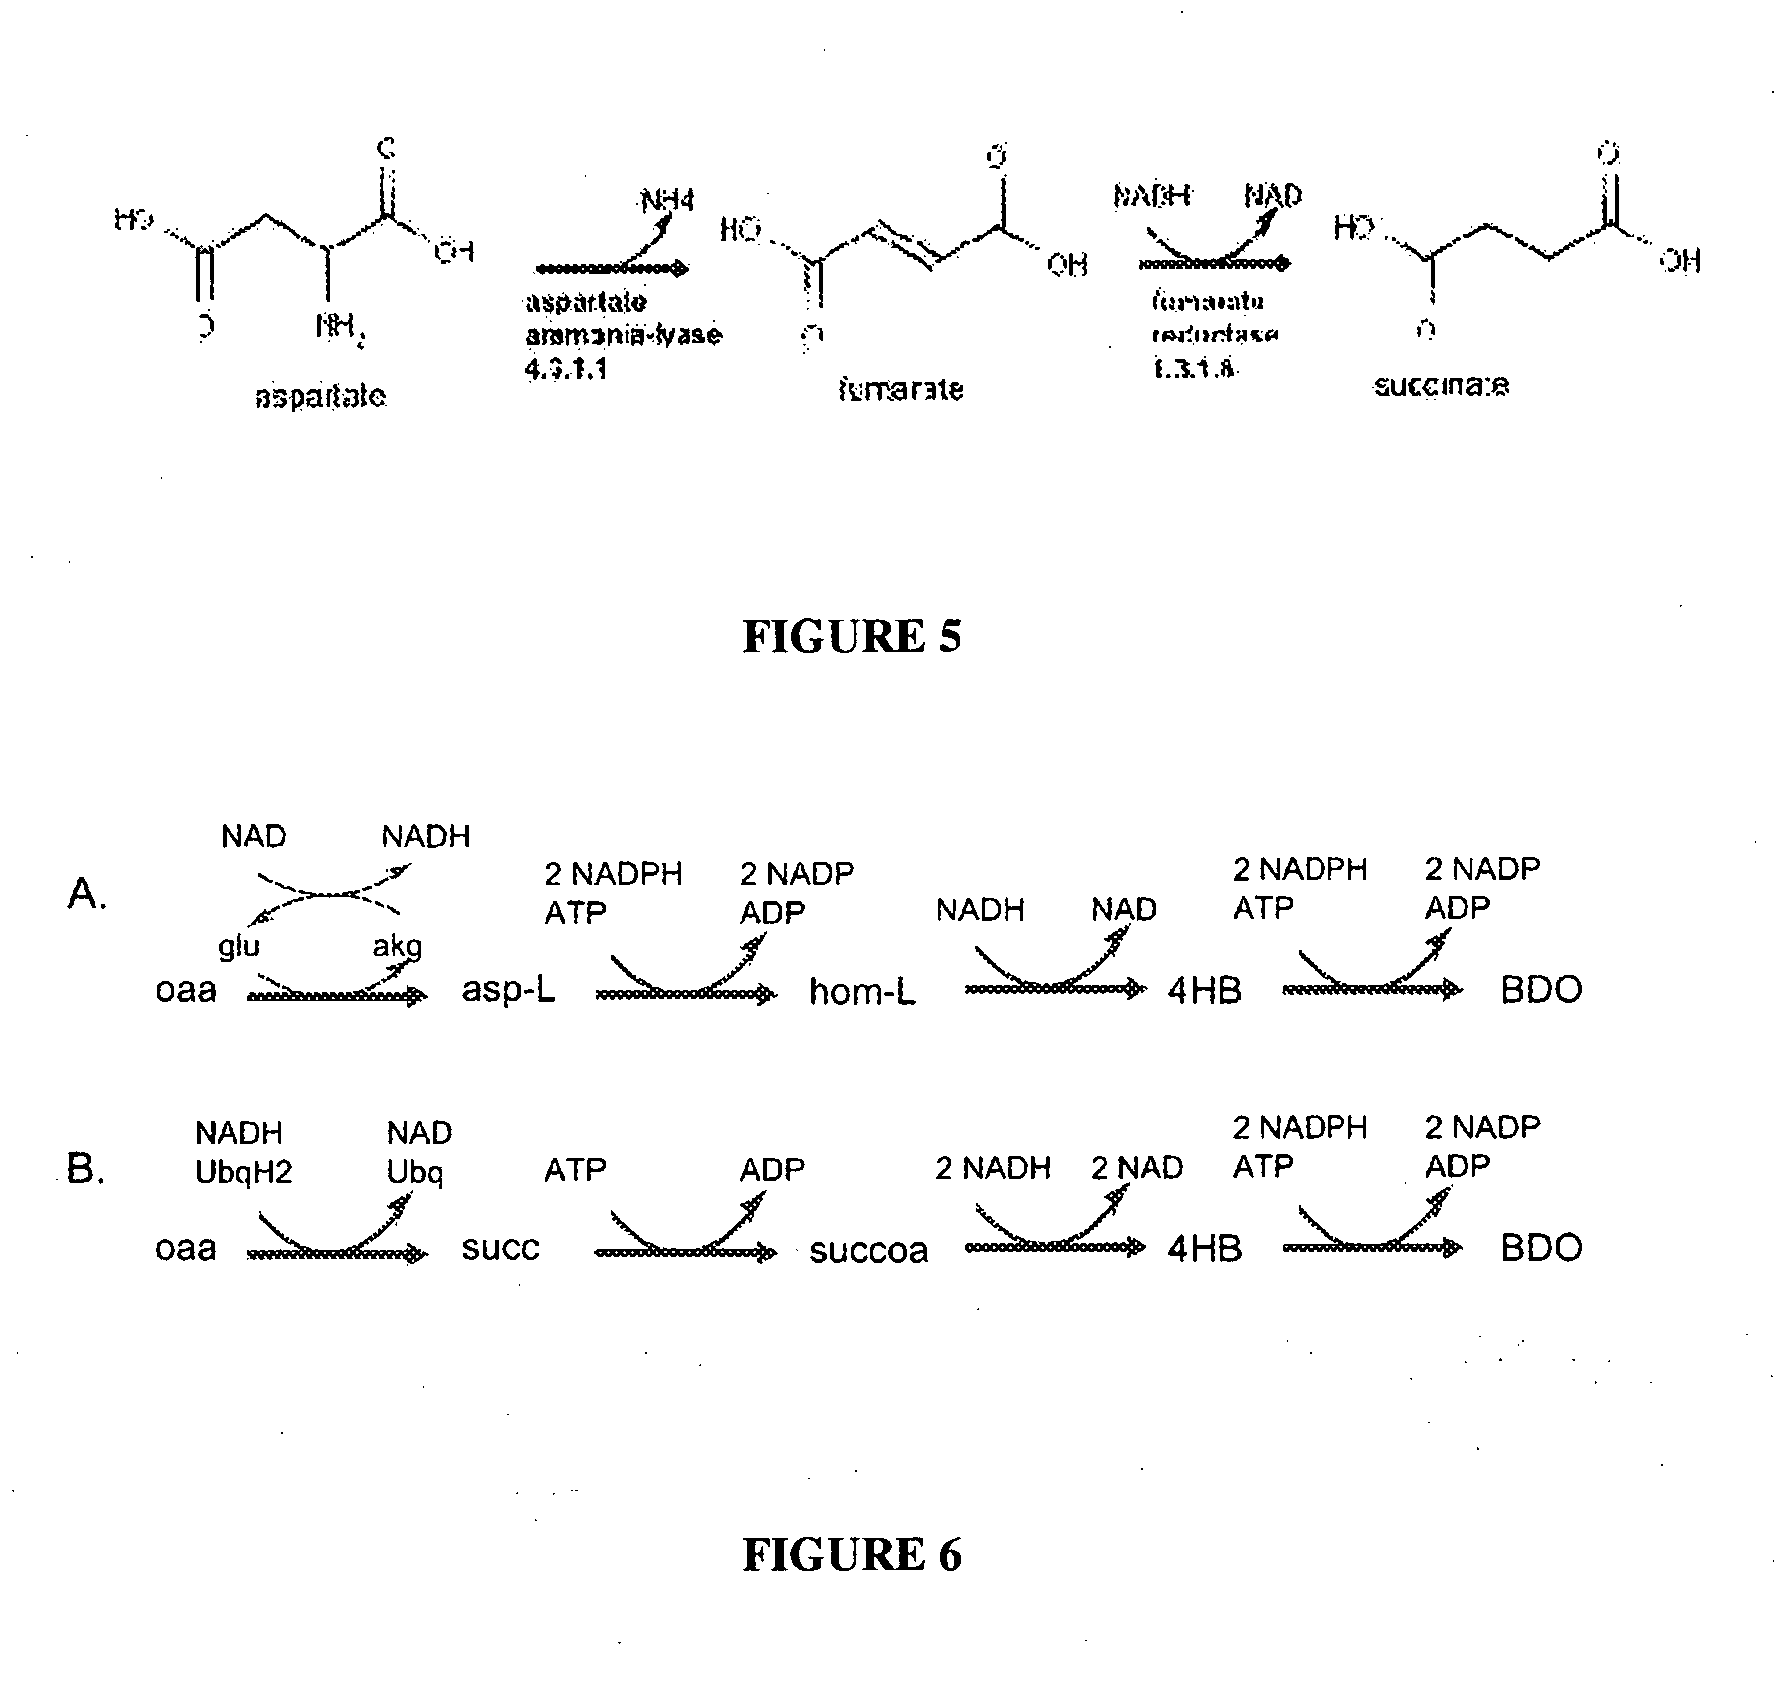 EP2137315B1 - Compositions and methods for the biosynthesis